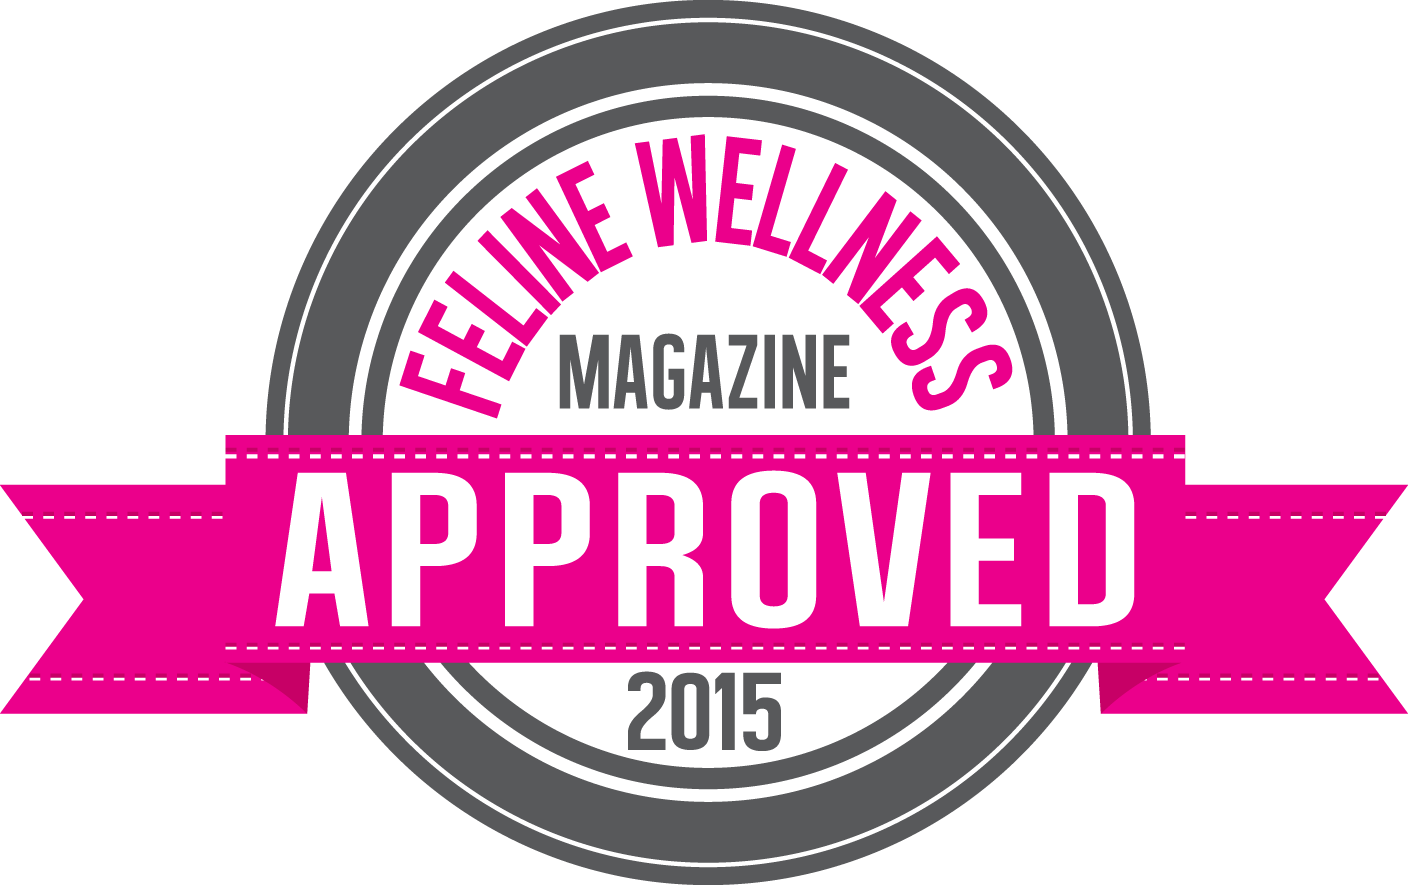 felinewellness-approved-logo-open.png